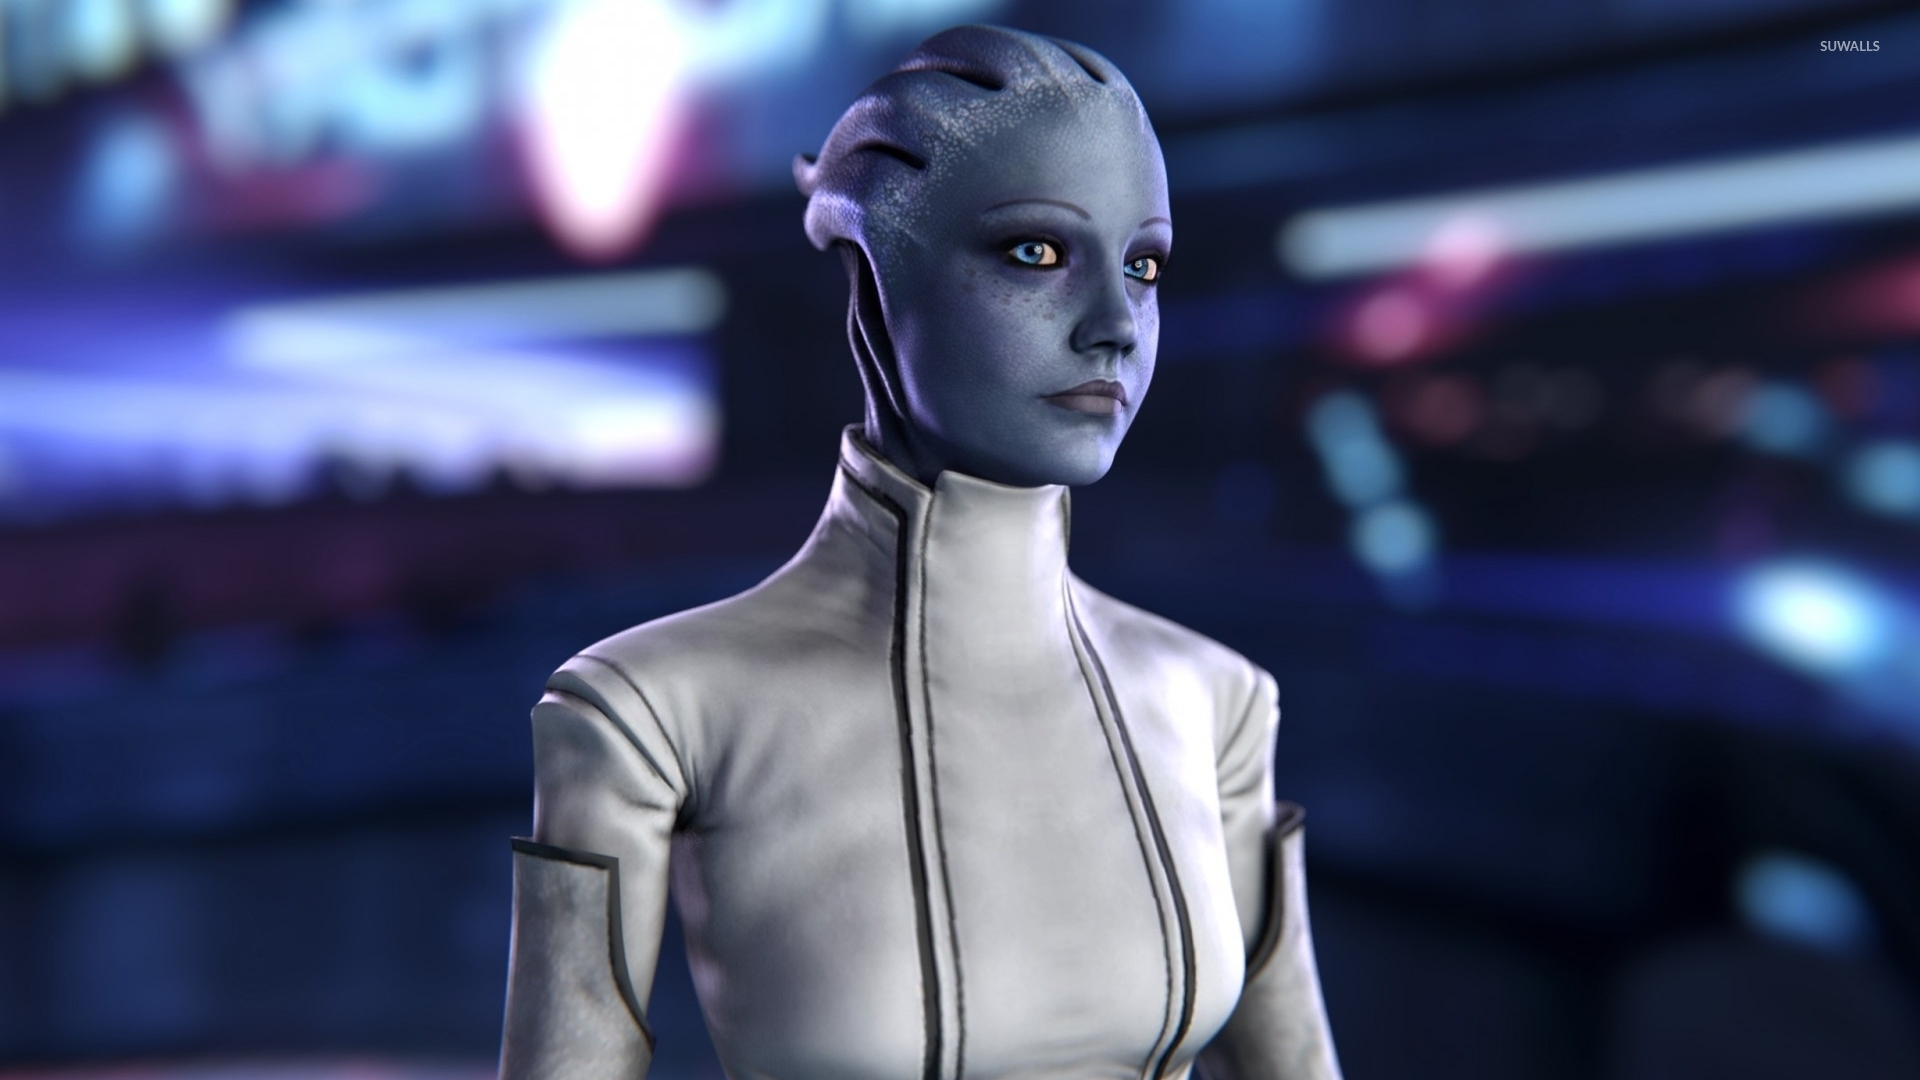 Skyrim Girl Wallpaper Asari In A White Suit Mass Effect Wallpaper Game